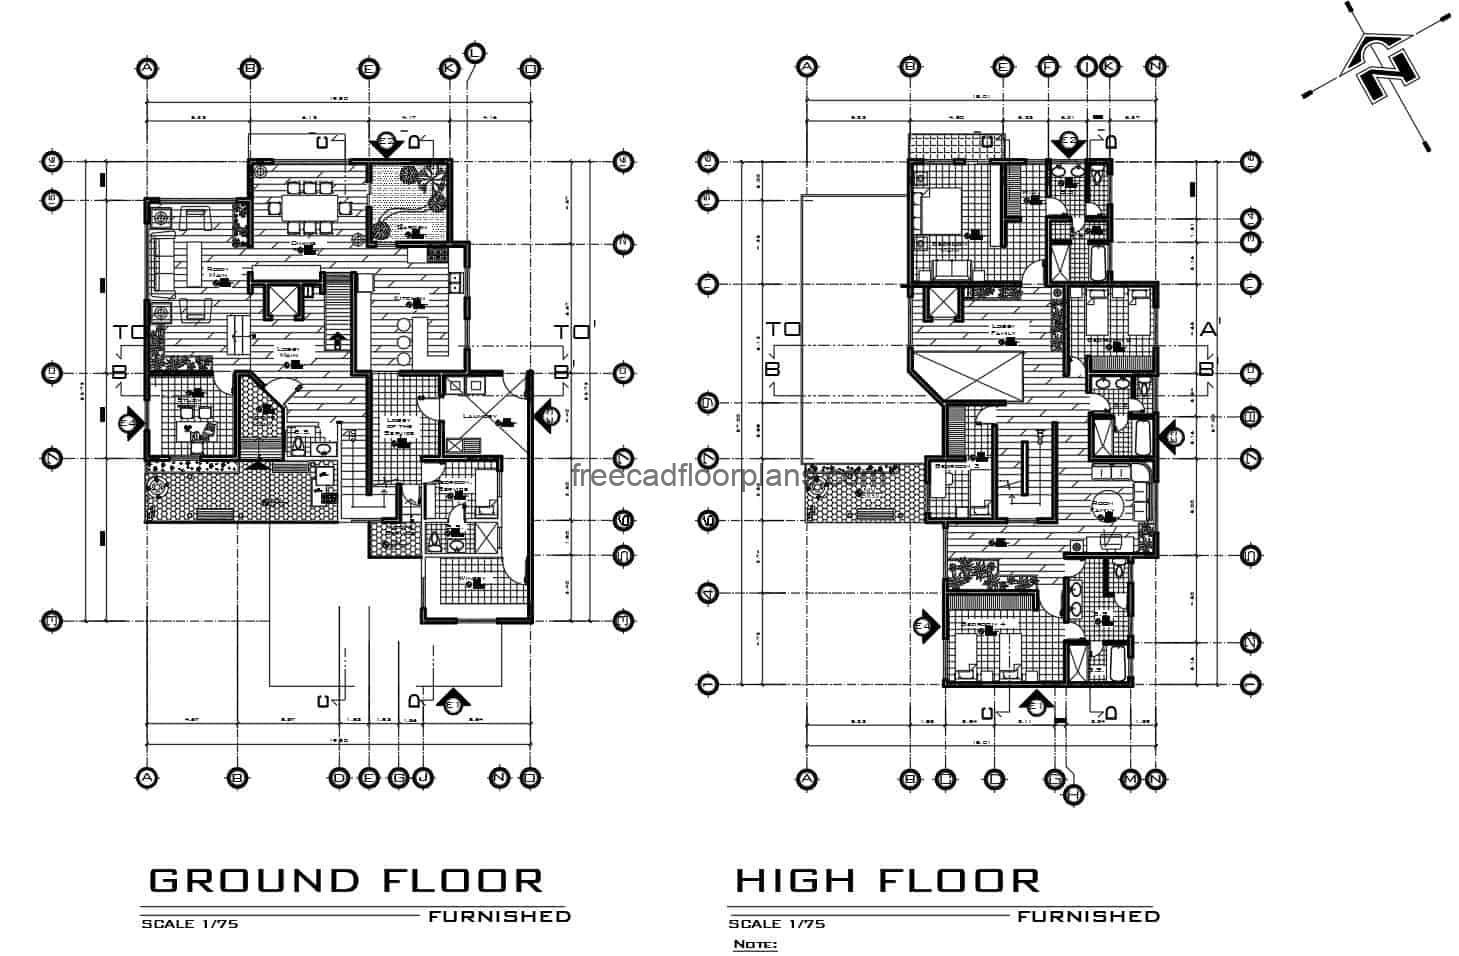 Complete two-level house project designed in autocad, architectural plan, dimensioning, elevations, sections, foundation details, landscaping, free download plan in DWG format